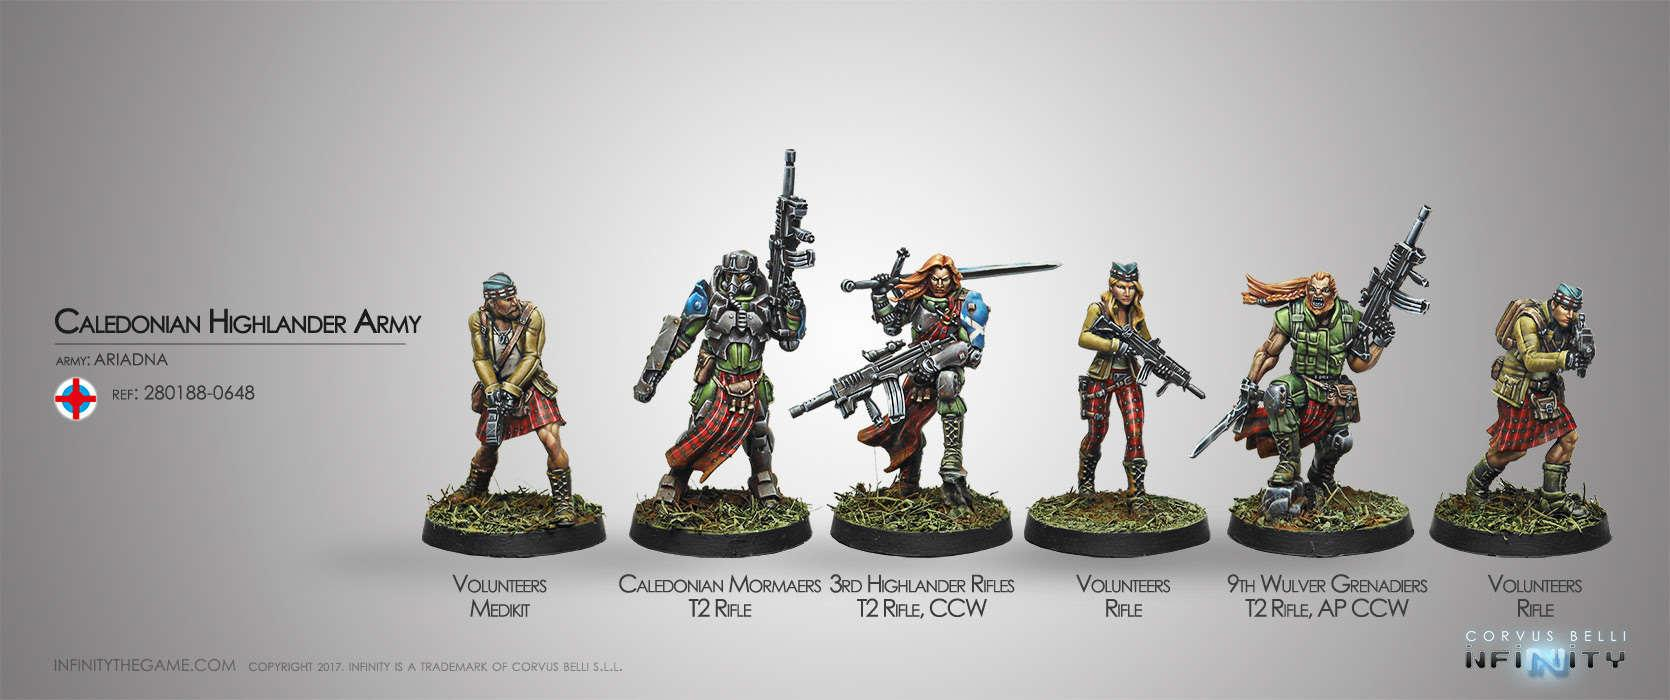 Caledonian Highlander Army (Ariadna Sectorial Starter Pack)